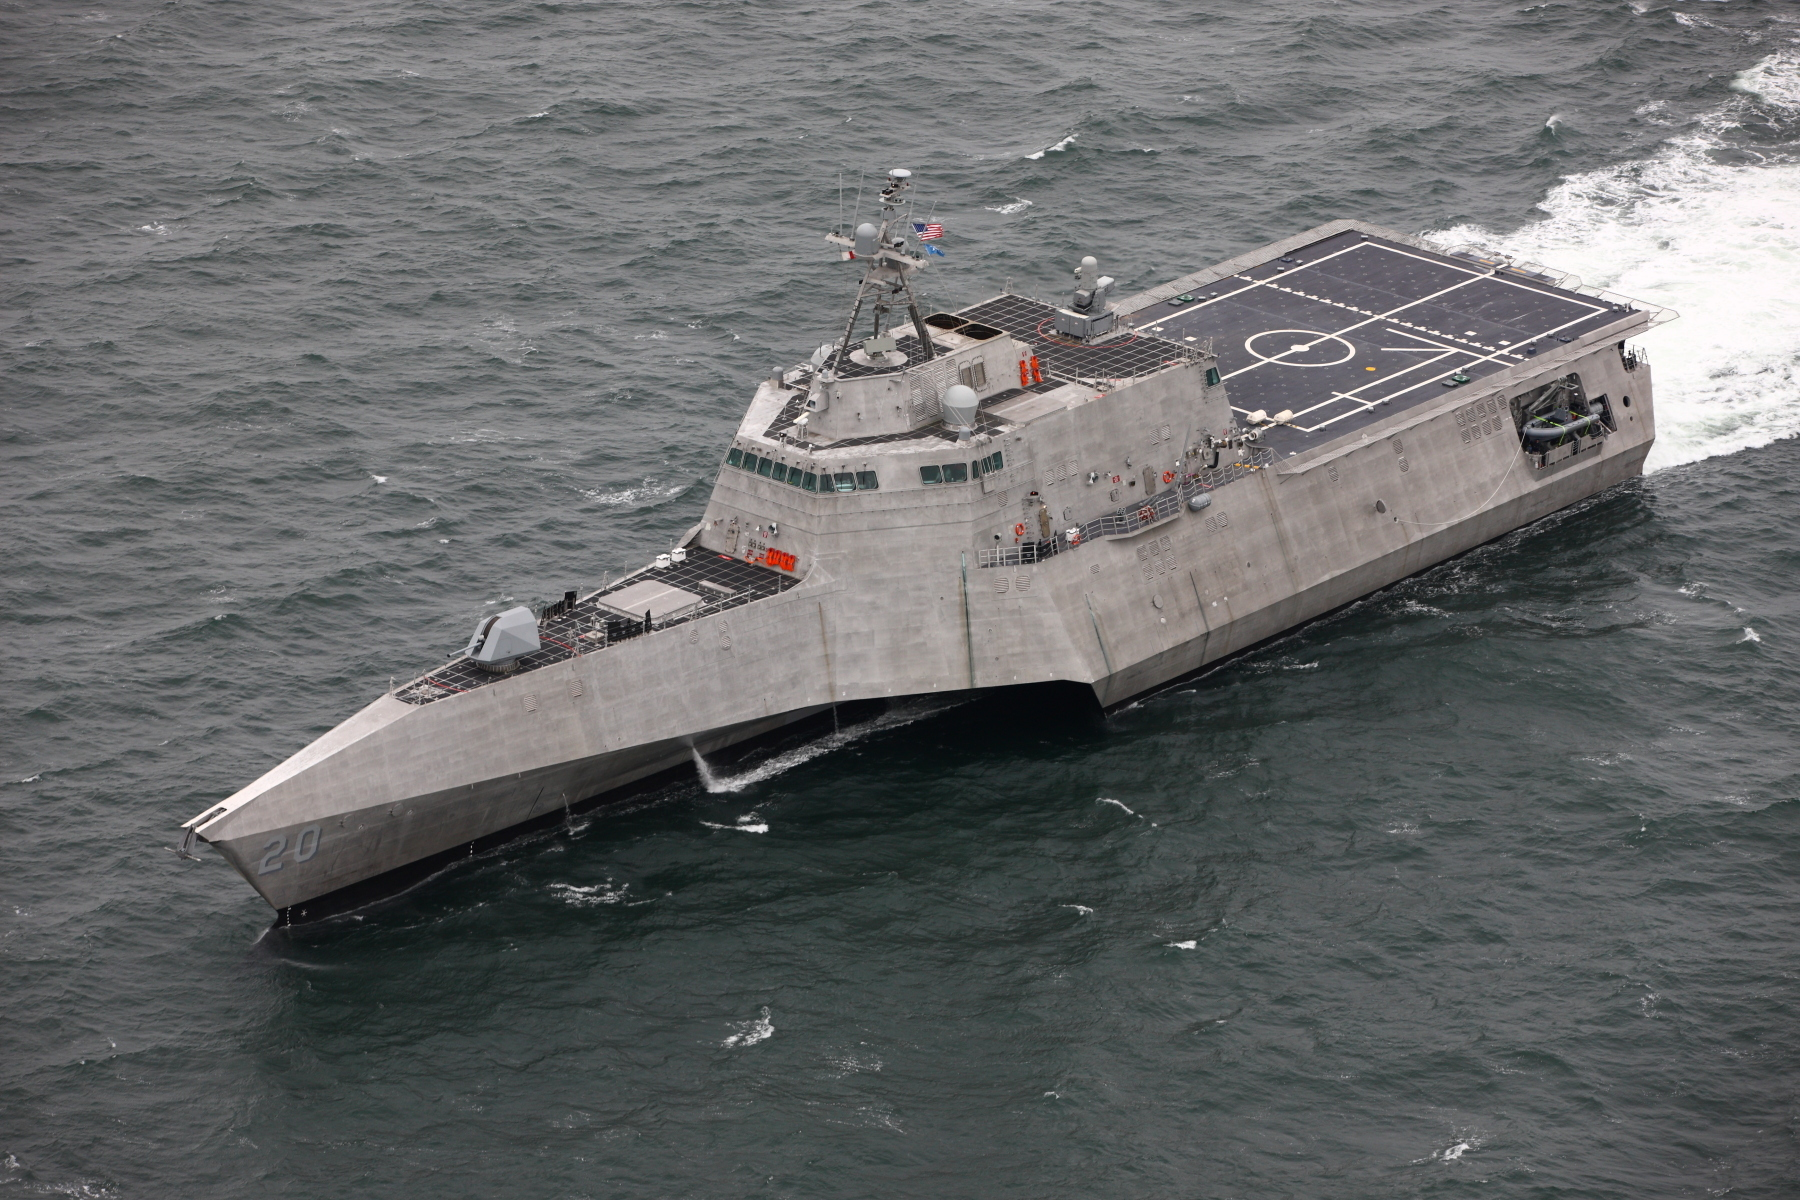 https://upload.wikimedia.org/wikipedia/commons/2/2f/USS_Cincinnati_%28LCS-20%29_underway_in_the_Gulf_of_Mexico%2C_in_2019_%28190210-N-NC292-1000%29.JPG